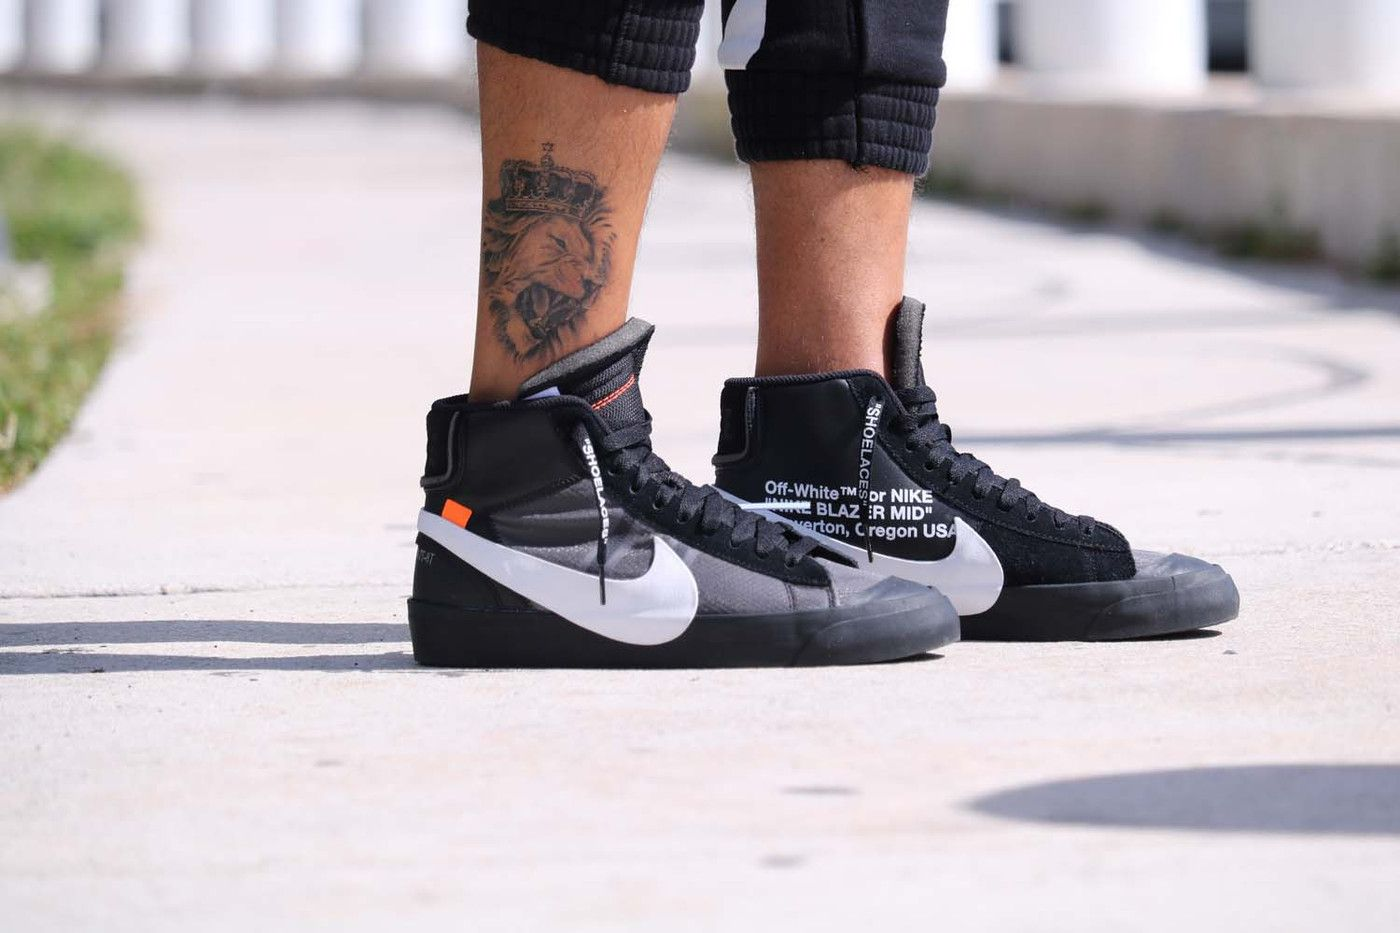 Off-White™ x Nike Blazer